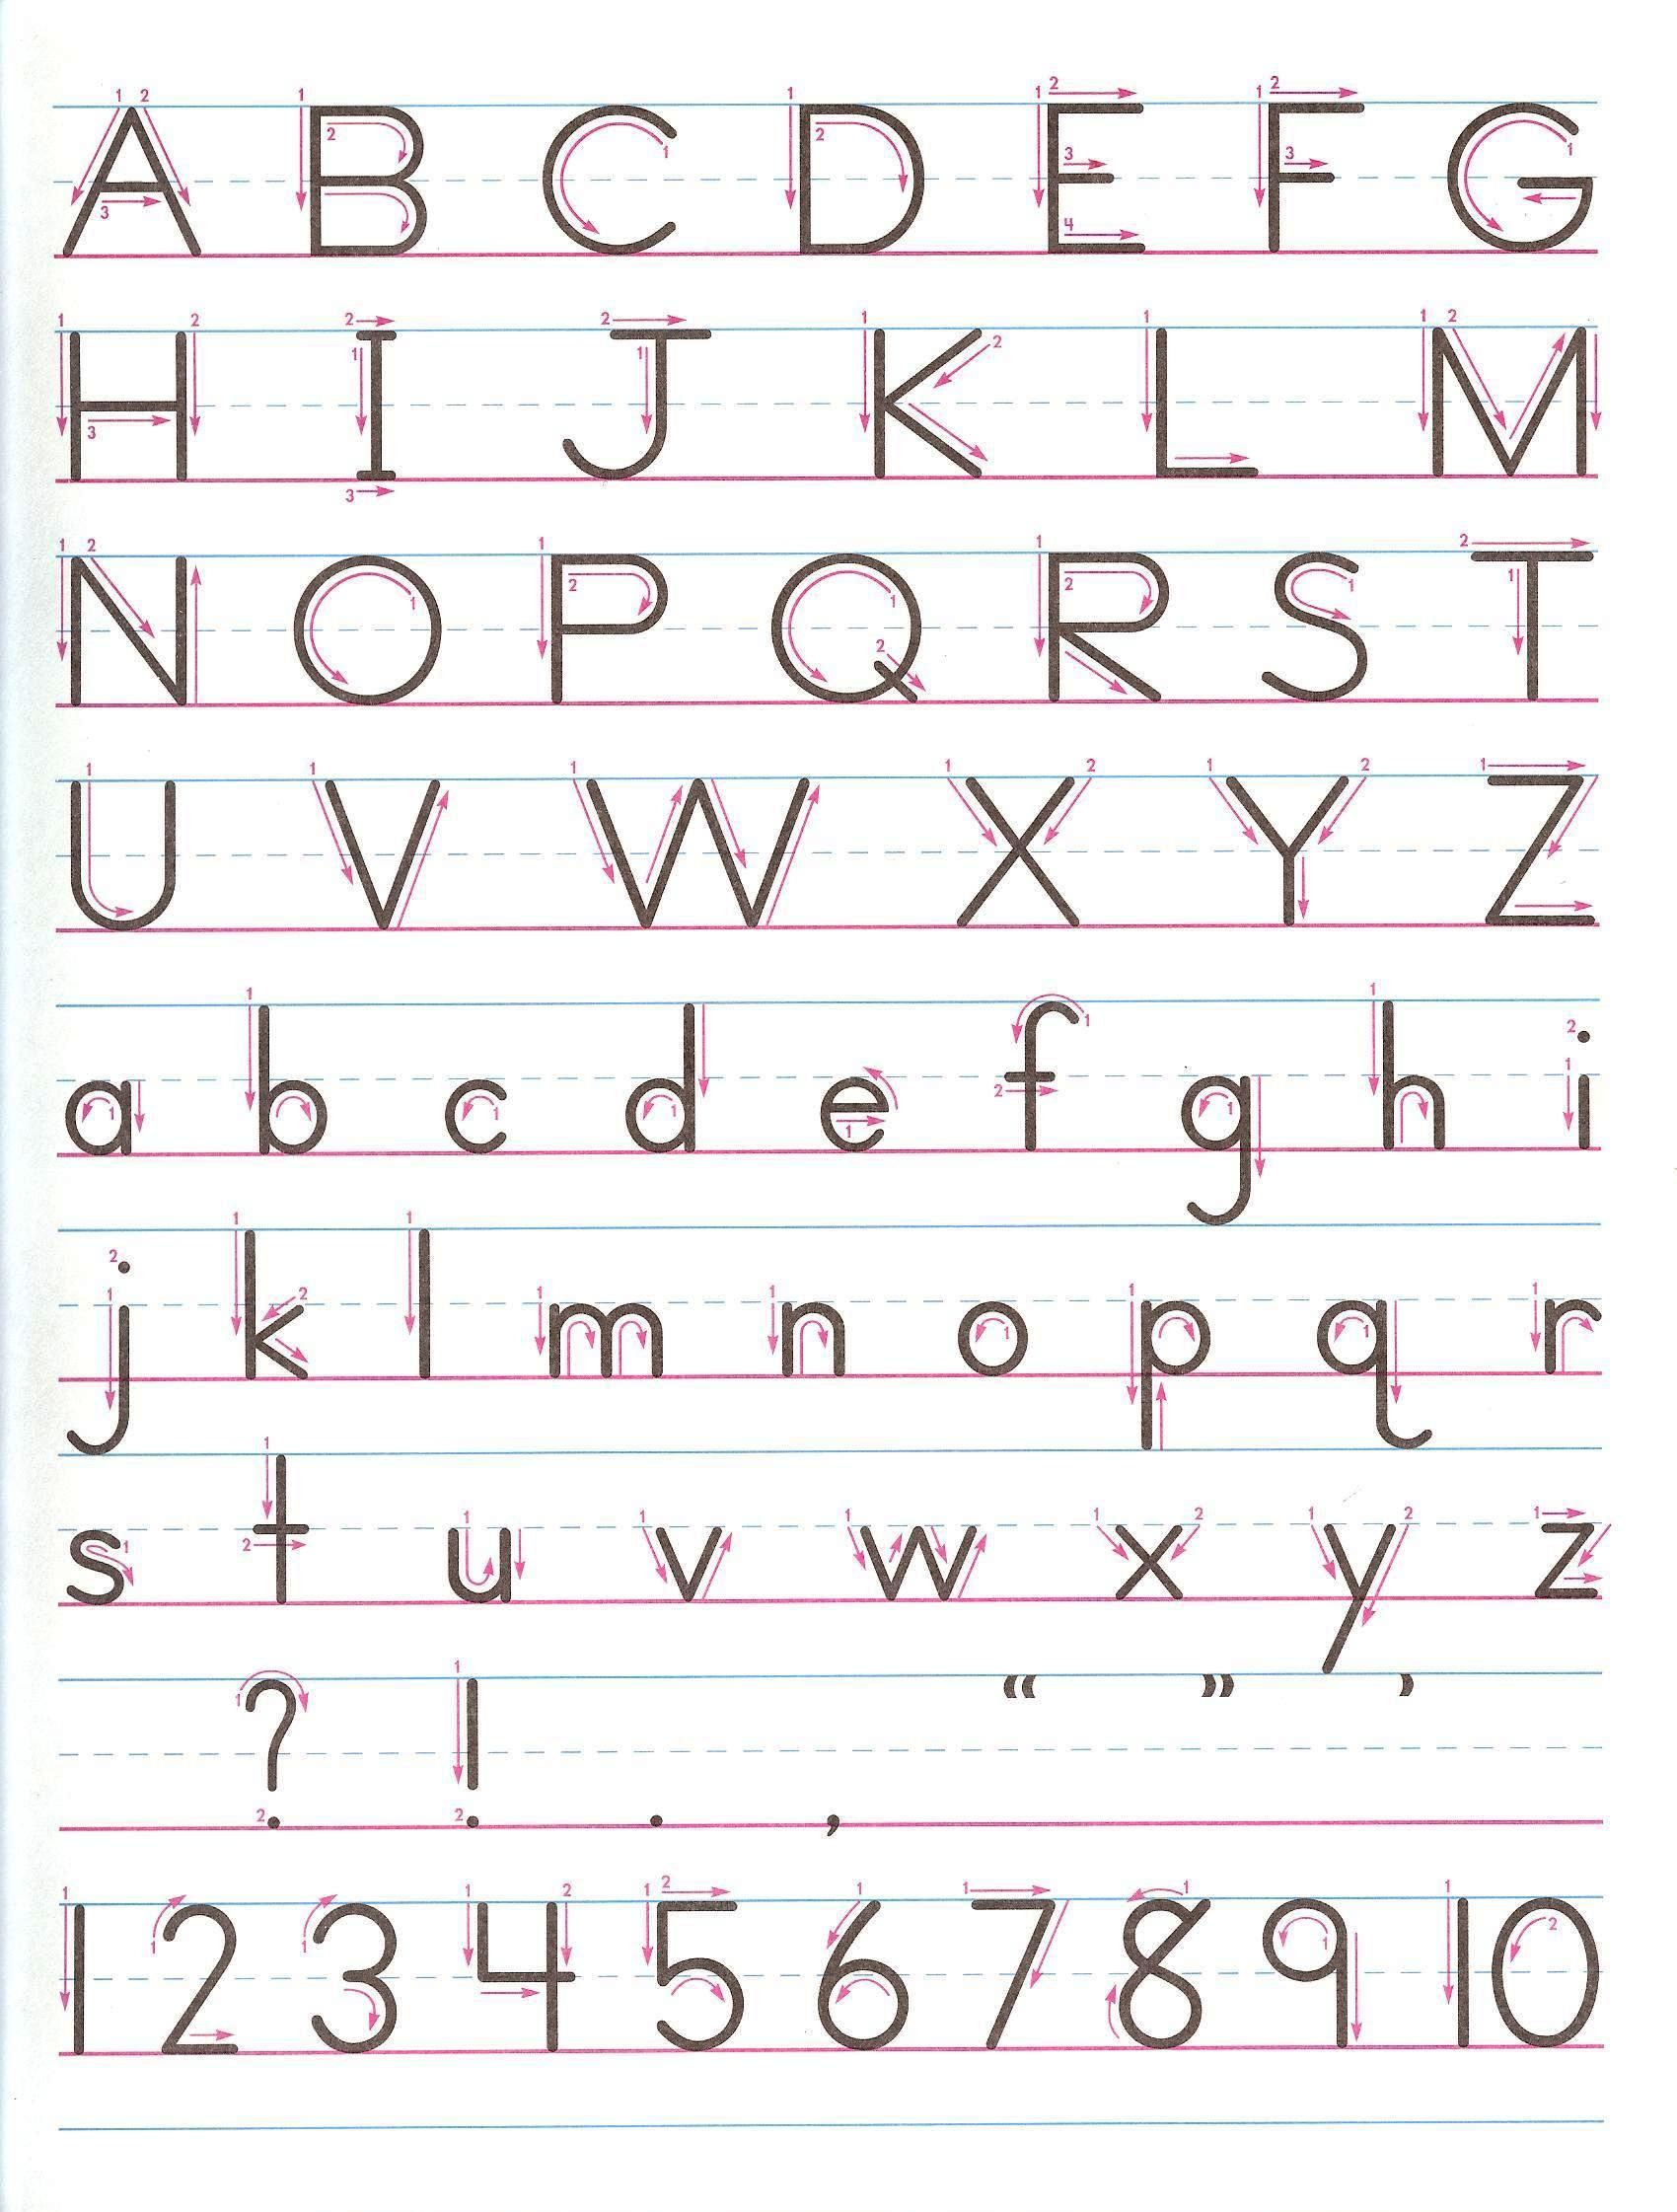 Worksheet Alphabet Handwriting 1000 images about handwriting on pinterest alphabet cursive and lettering